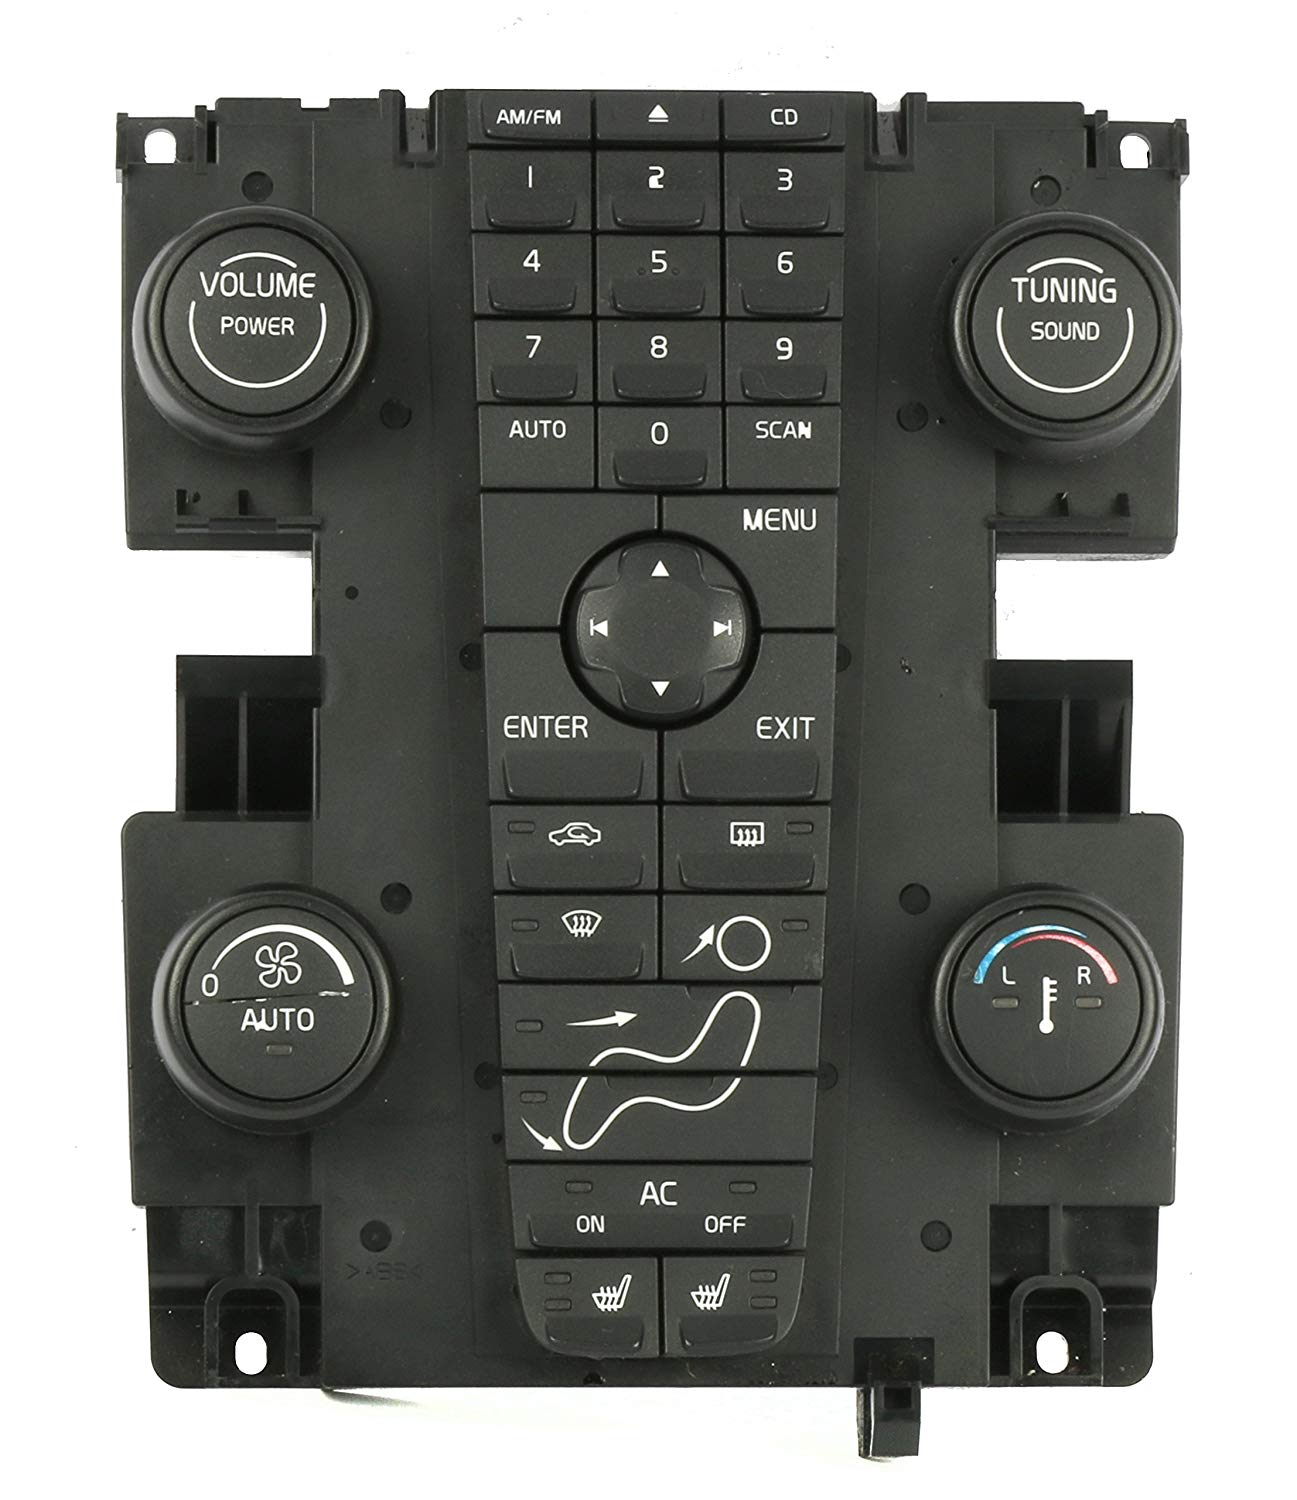 cheap volvo 70 series, find volvo 70 series deals on line at alibaba comget quotations · 2004 07 volvo 30 40 50 series audio control module with climate controls 8697670